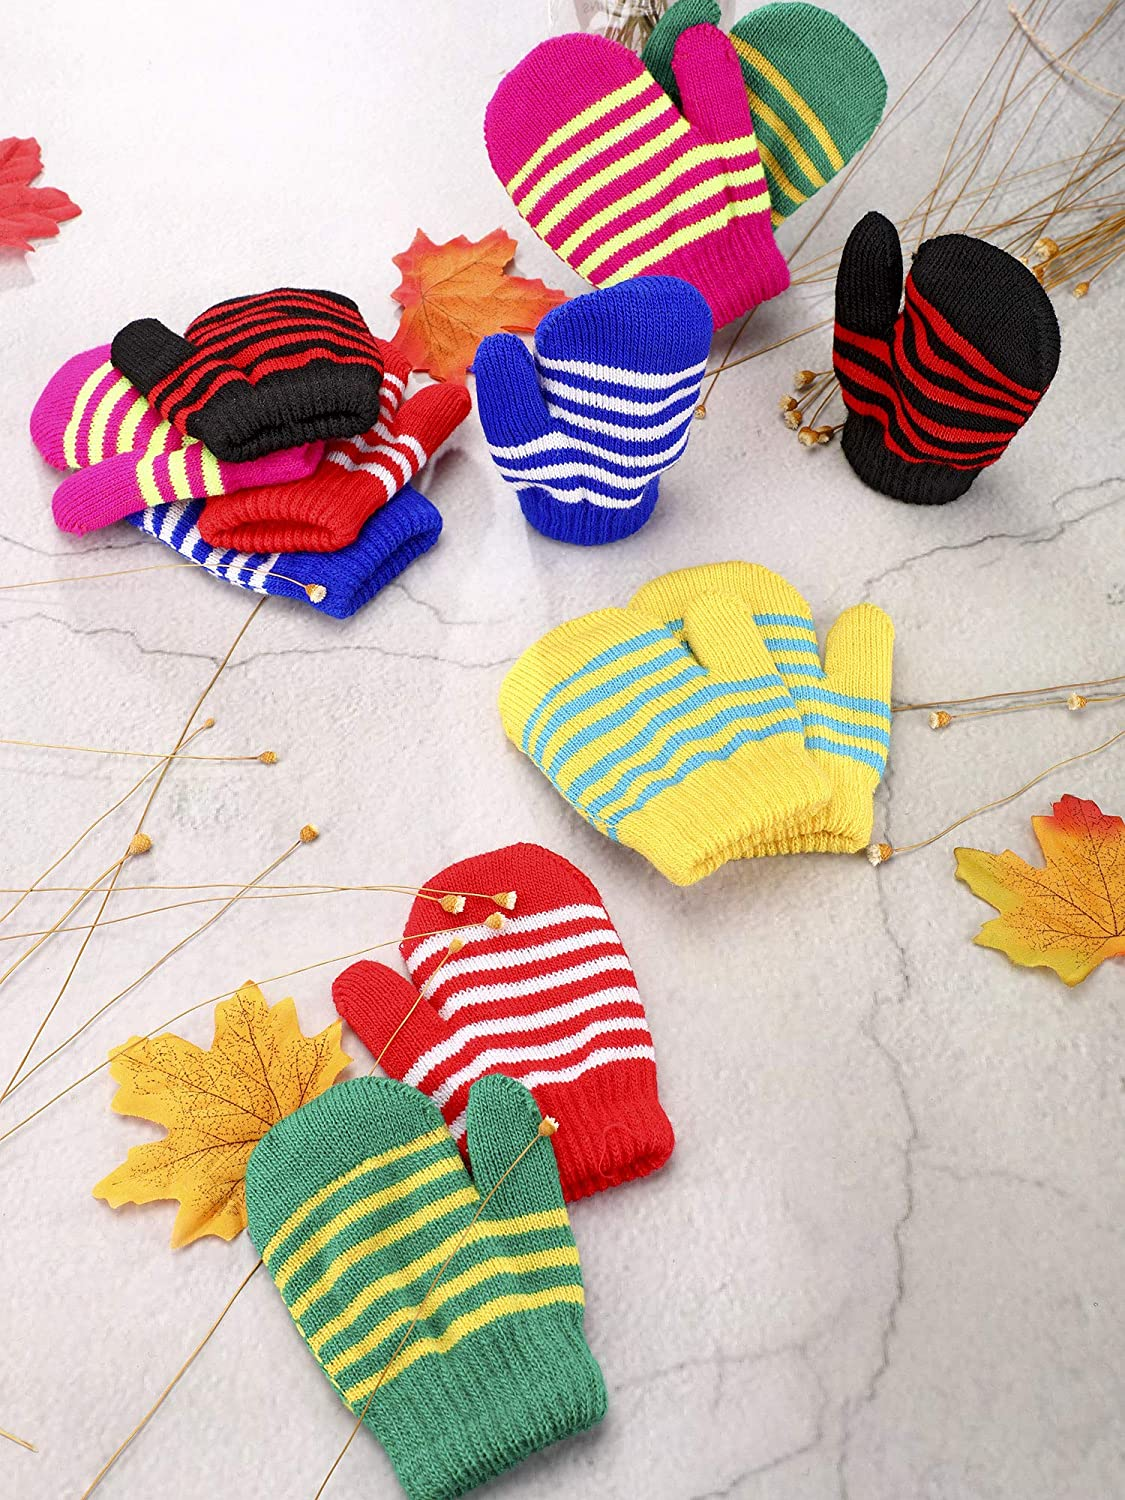 Boao Stretch Mittens Winter Warm Knitted Gloves for Halloween Party Kids Toddler Supplies